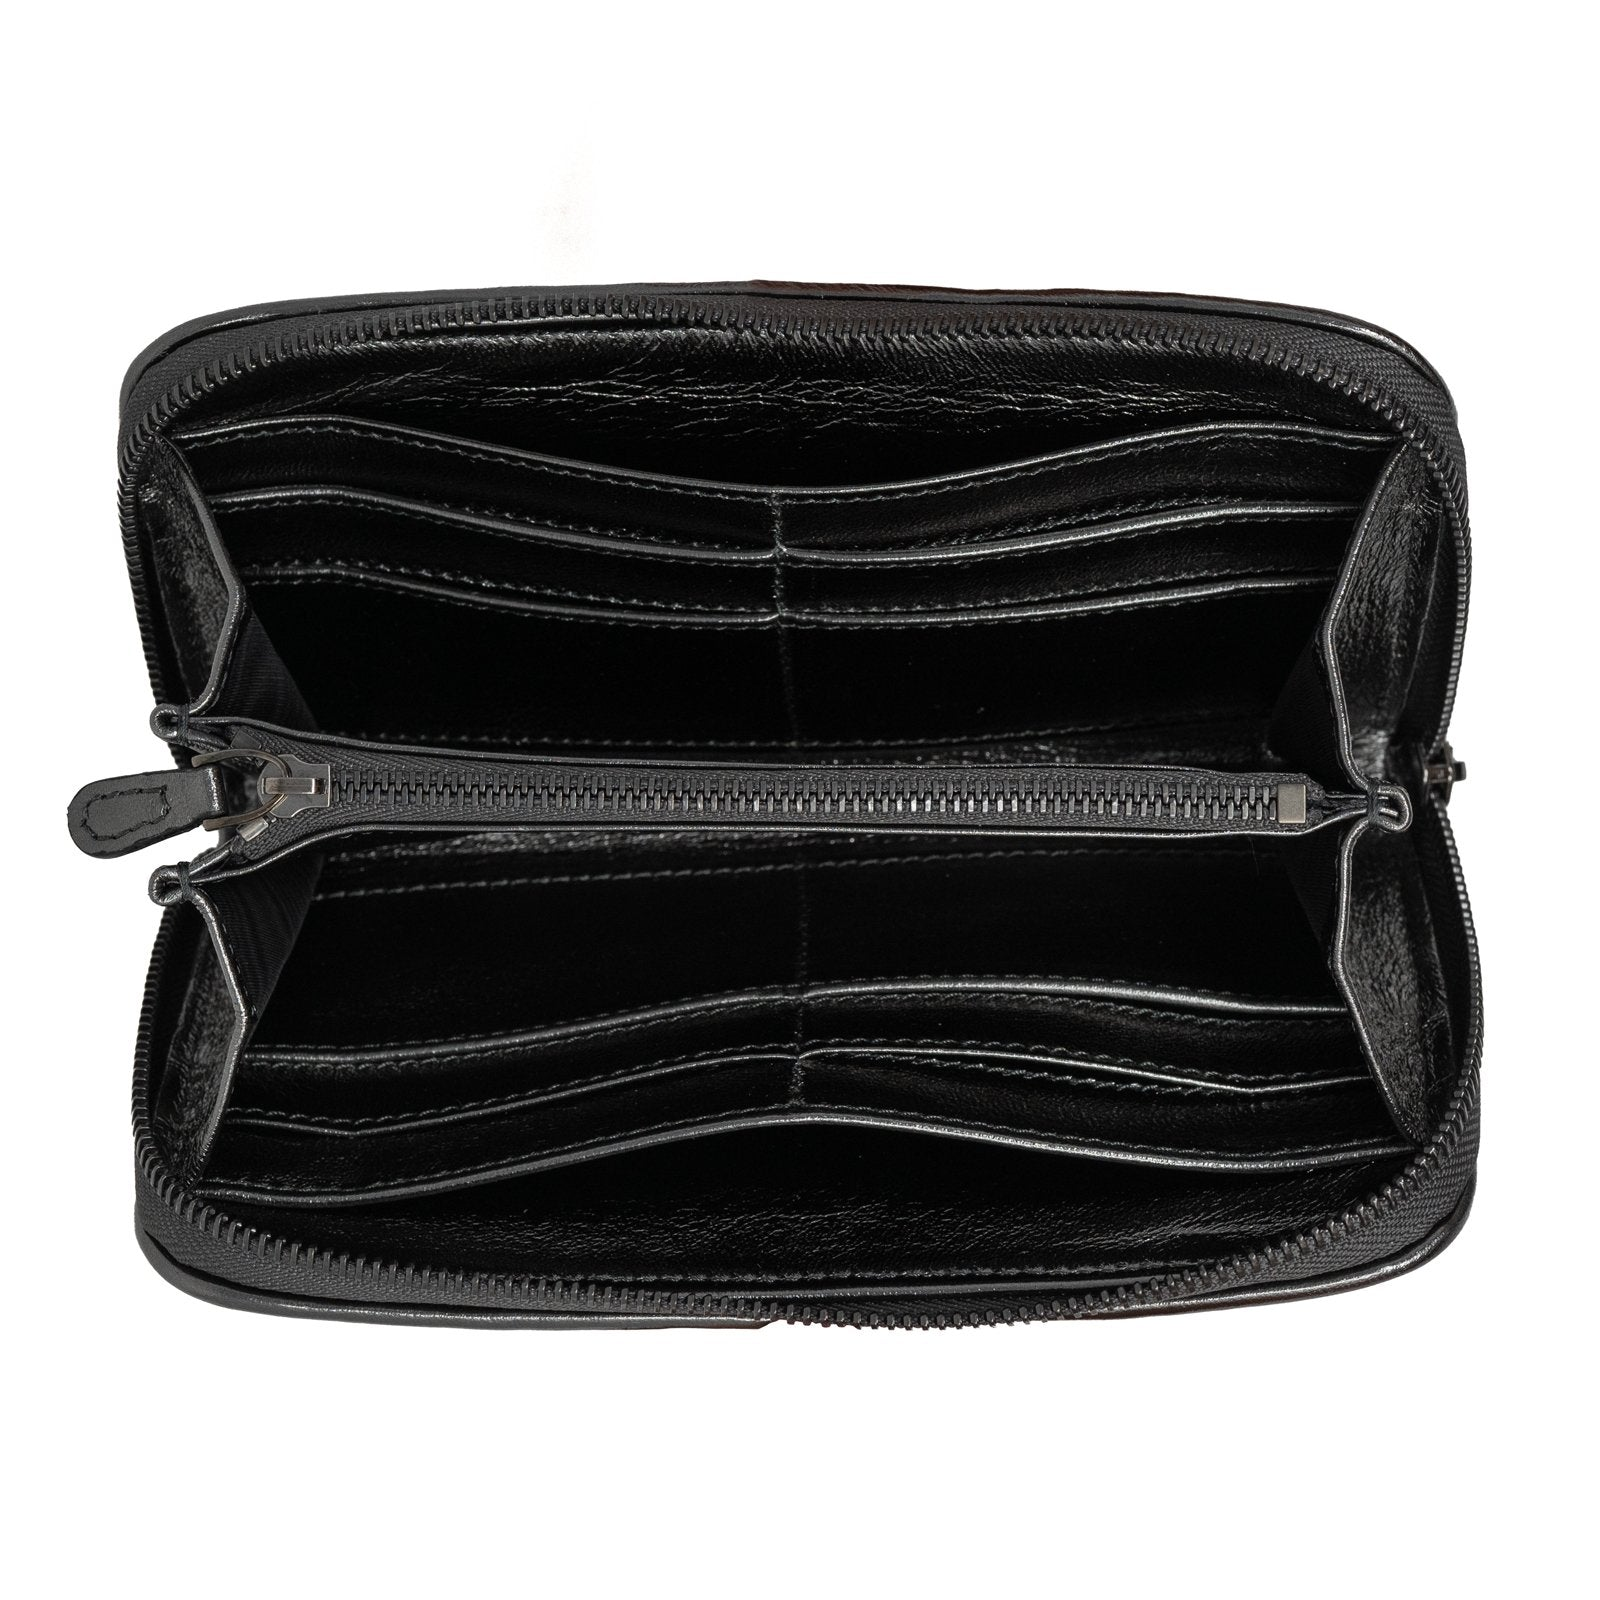 Women Intrecciato Optical Leather Zippered Wallet Black Nappa and Suede - Jennifer Tattanelli